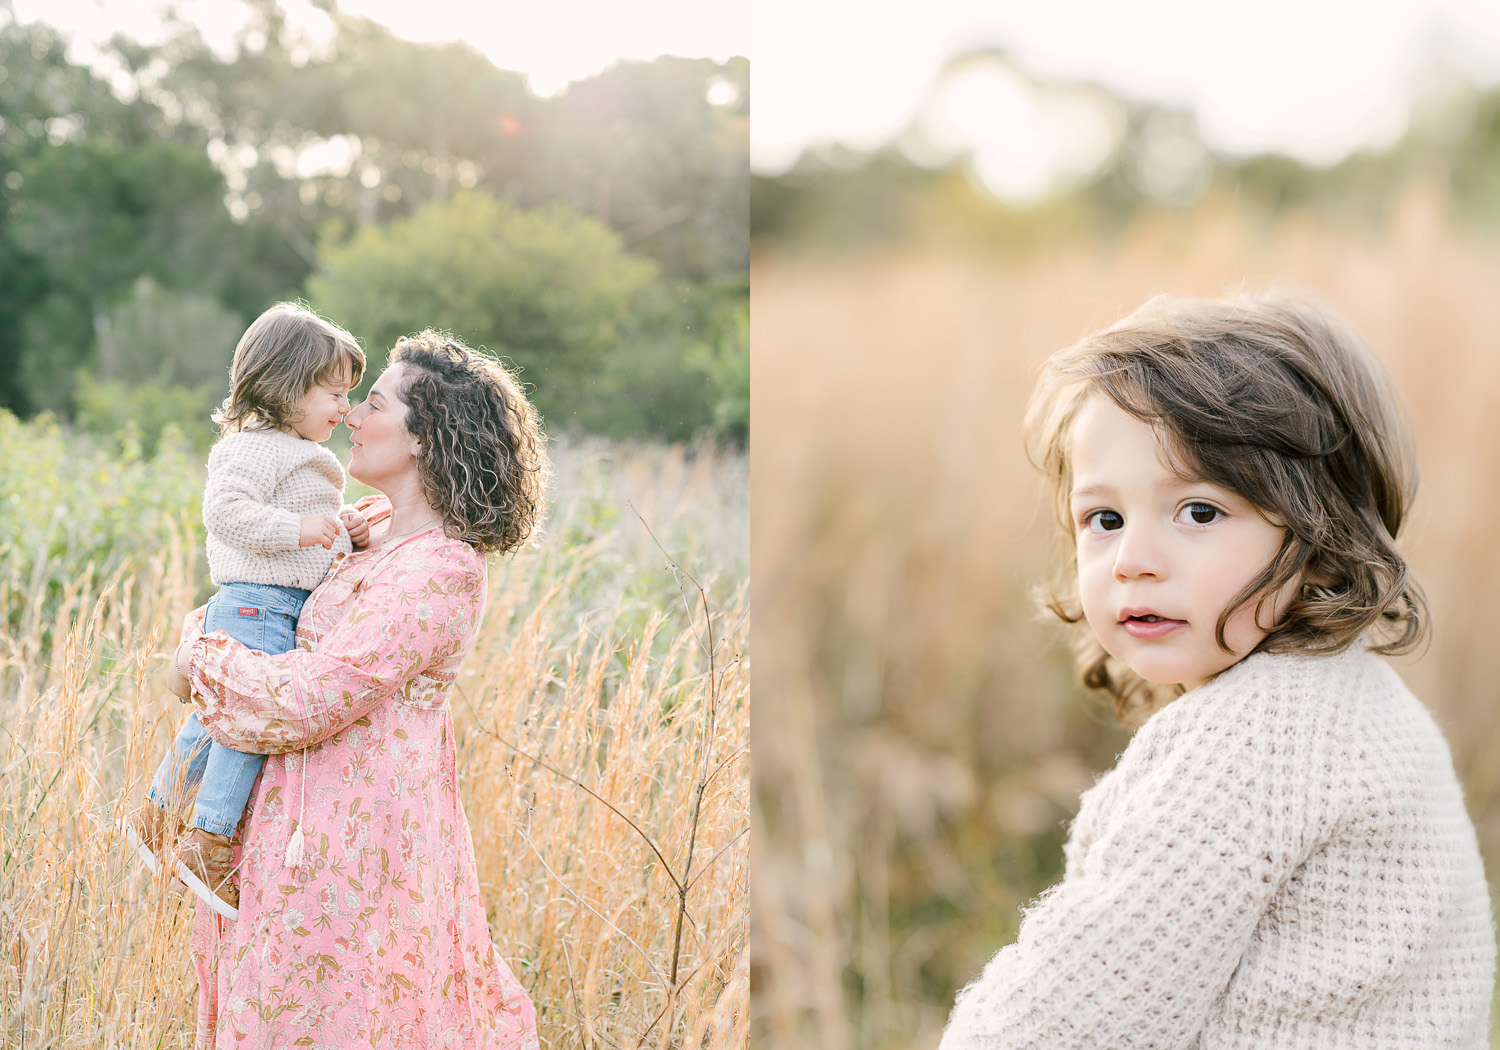 Two images side by side, first image of mother holding young son with faces close together, second image of young boy with long hair looking to camera sweetly as photographed by Sutherland Shire Family Photographer Sevenish Photography